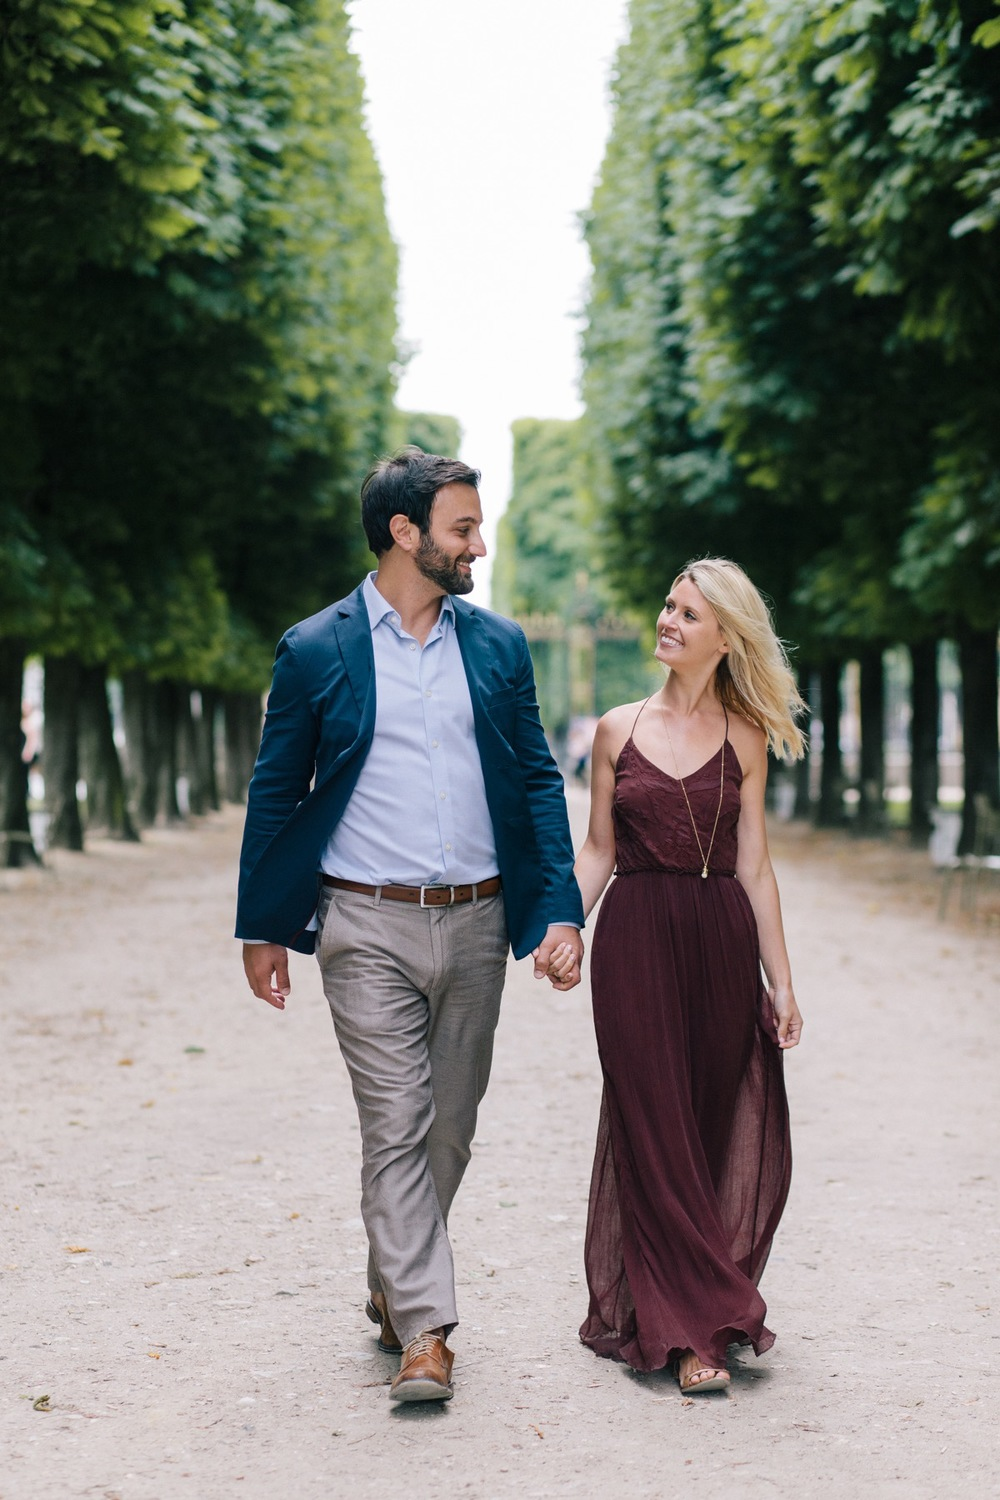 Jardin du Luxembourg Surprise Proposal in Paris